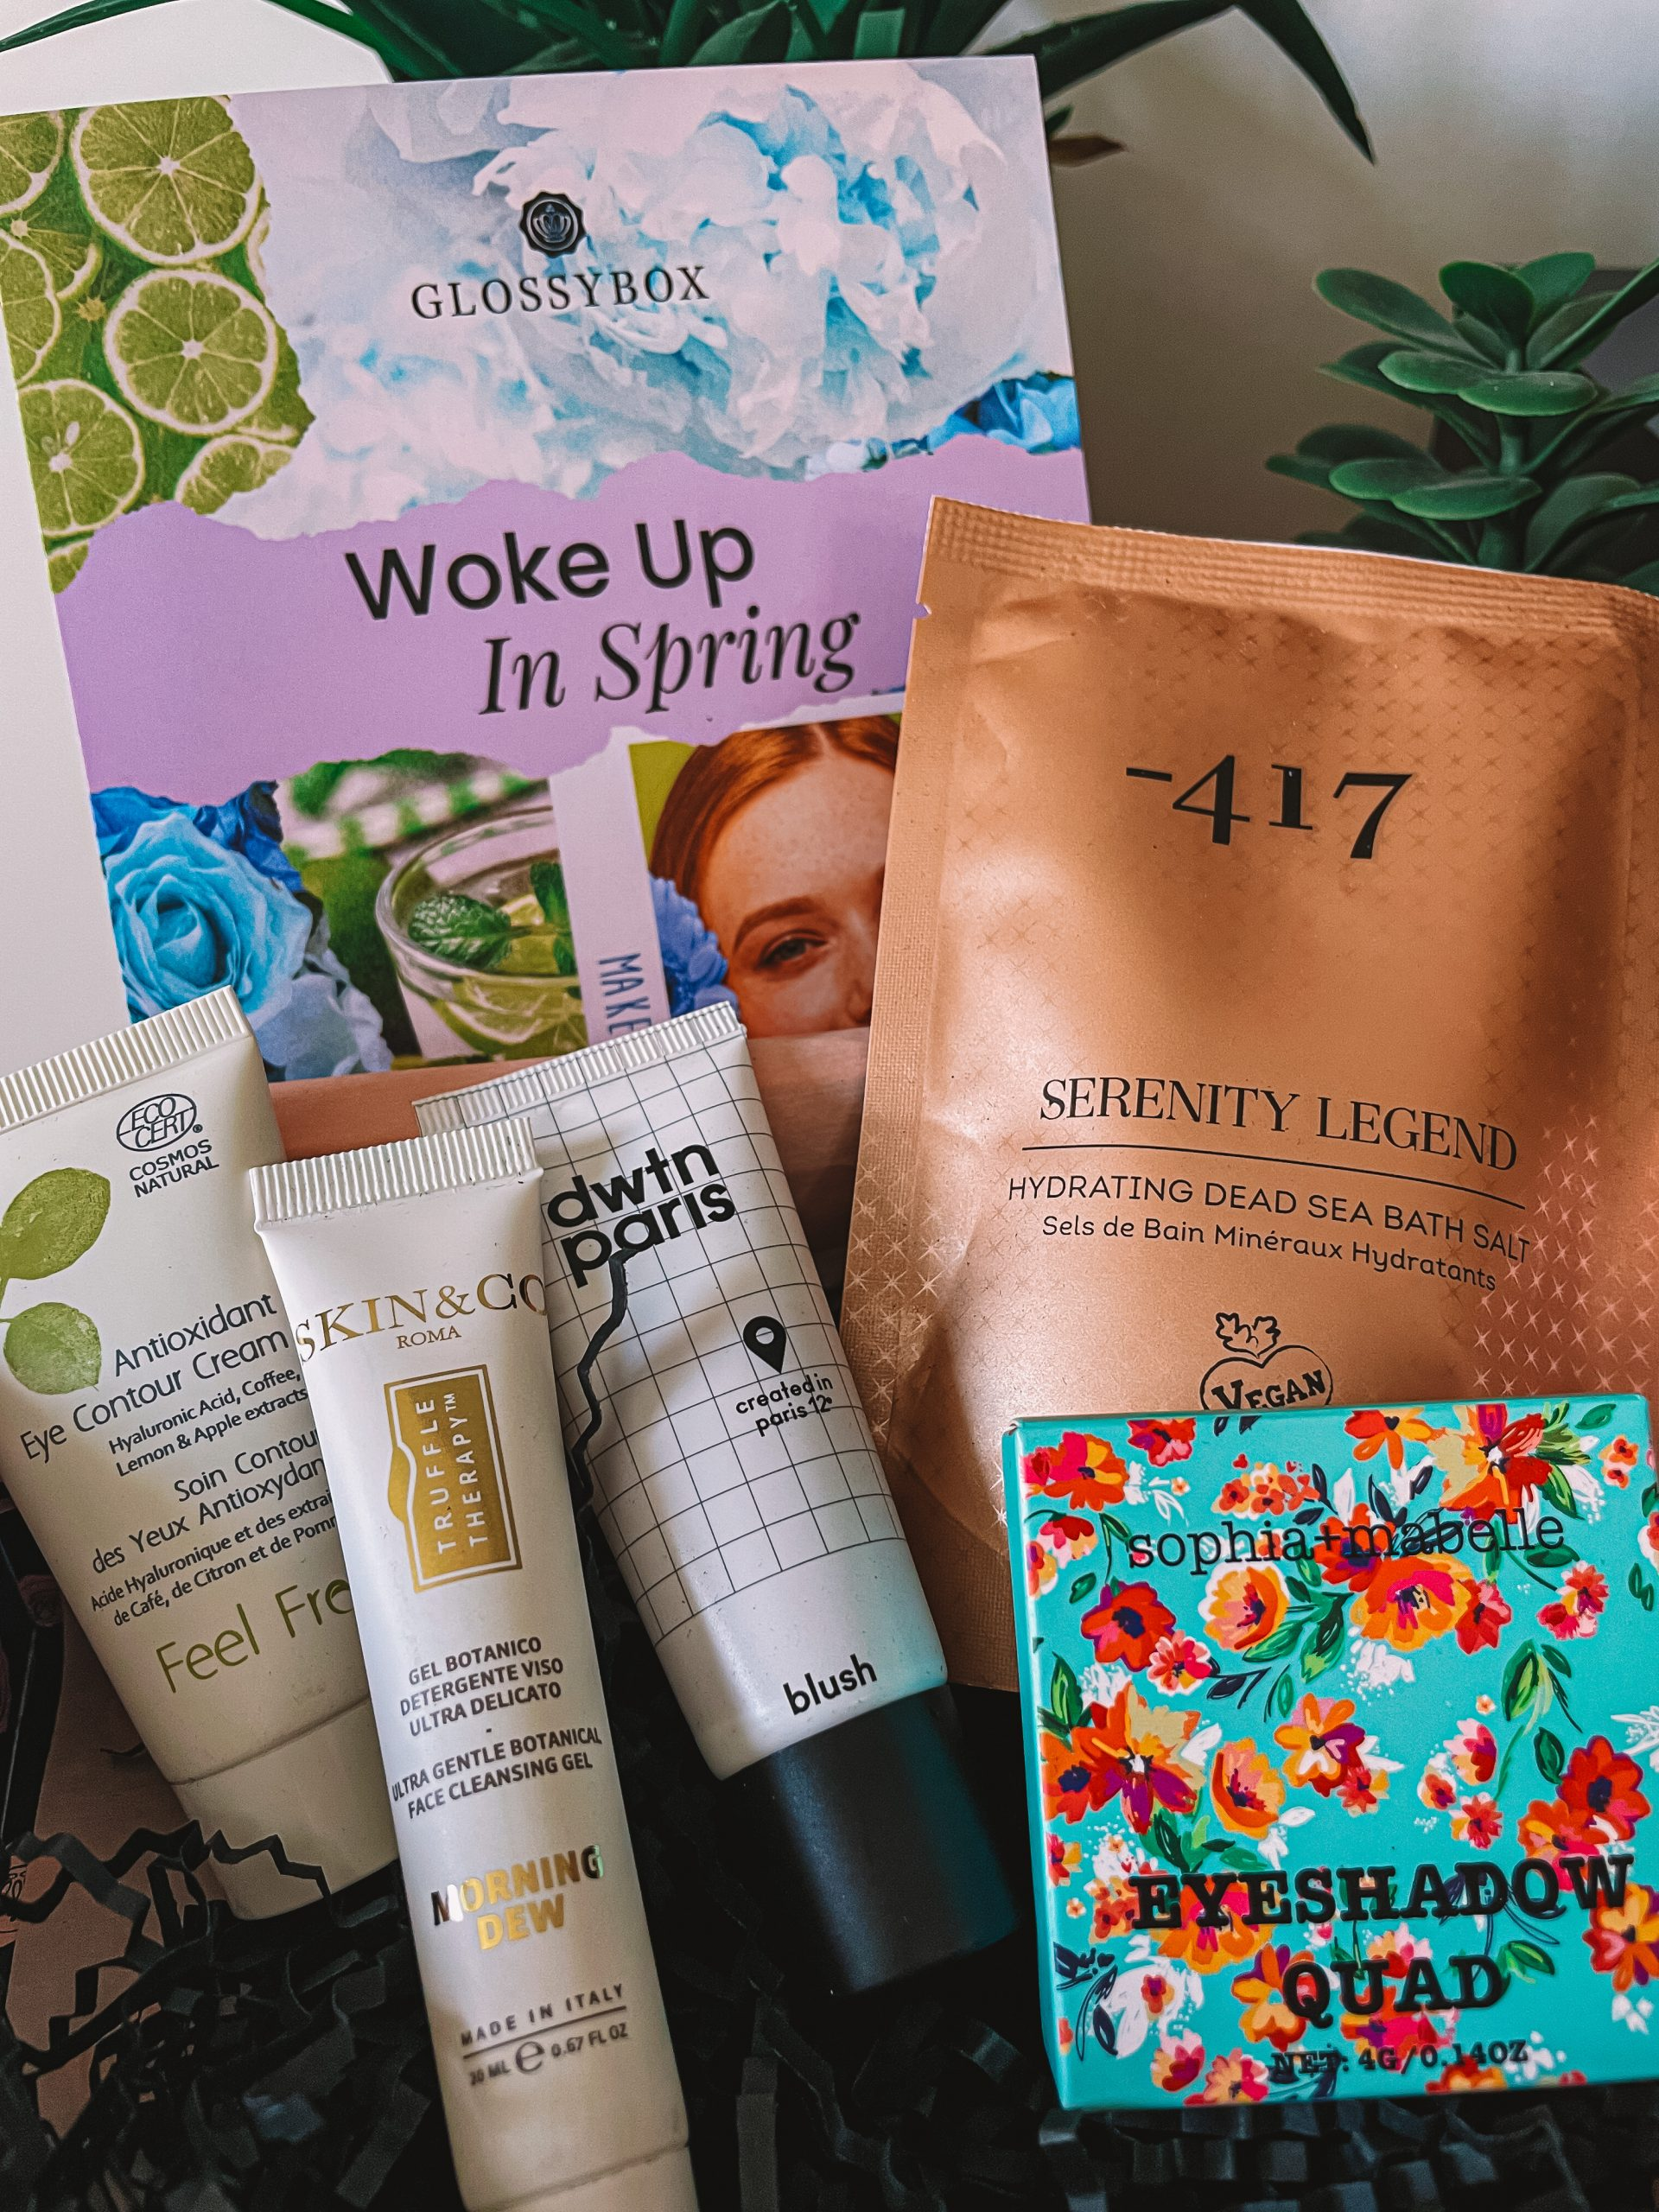 Glossybox April 2021 Unboxing